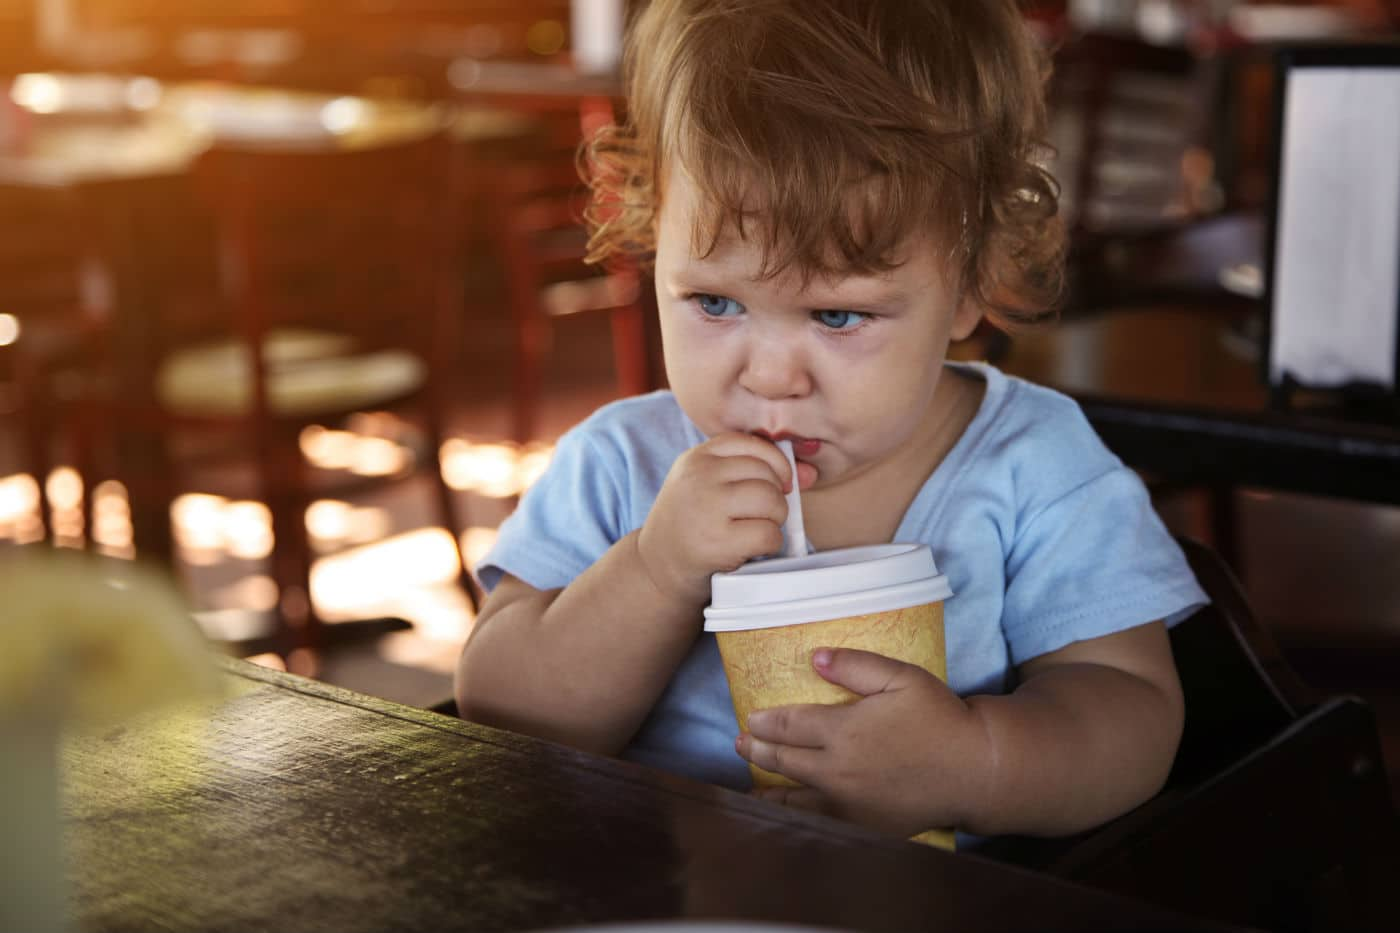 Child Served Alcohol in sippy cup